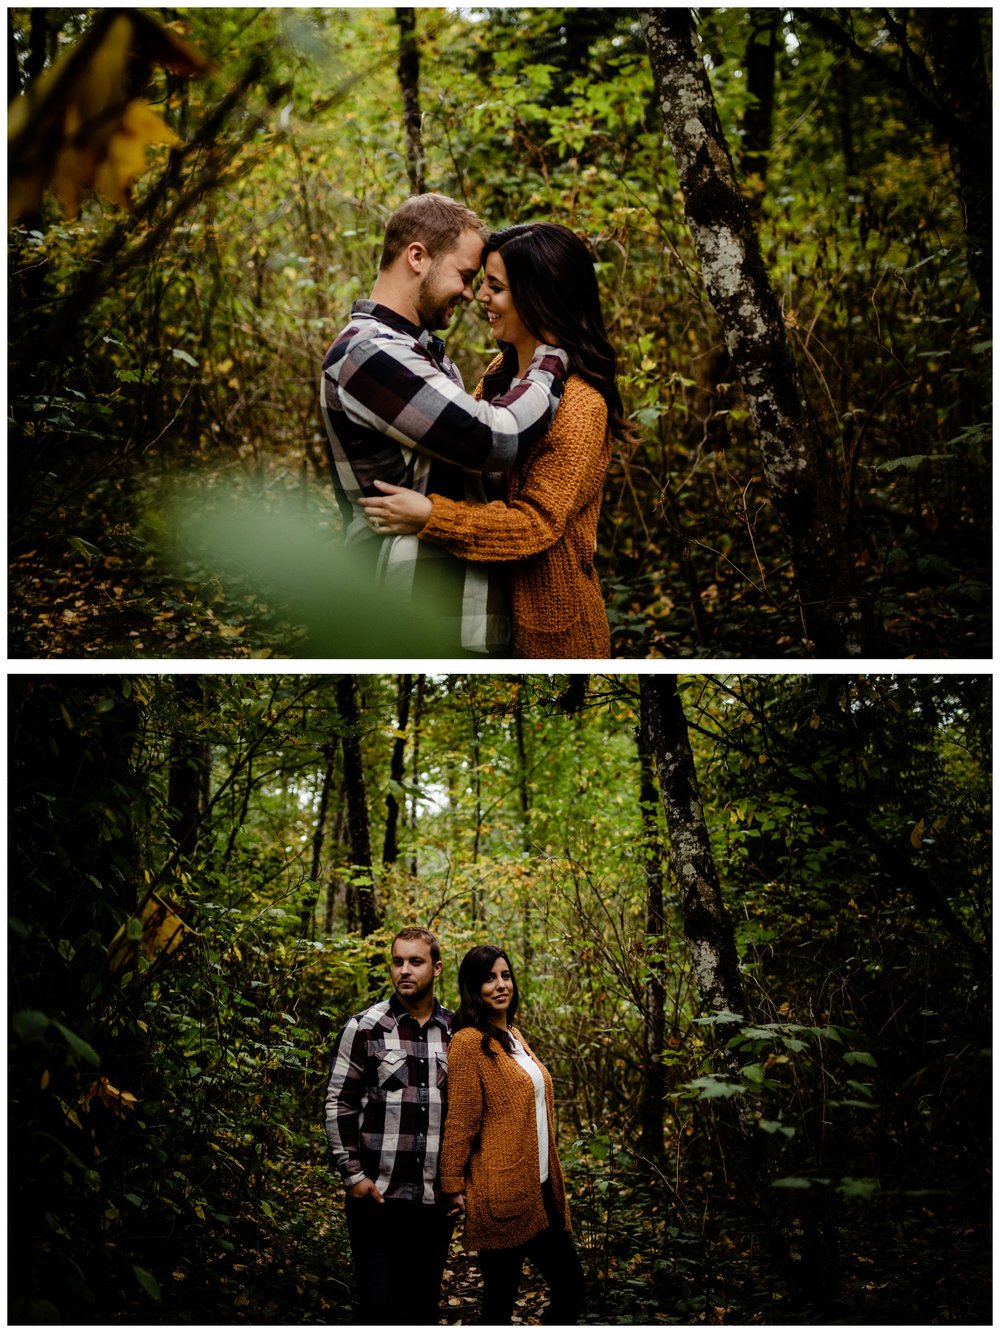 Williams Park Aldergrove Engagement Photographer Moody Fall Couple River Water Romantic Pose Yellow Leaves White Dress Dark_0034.jpg